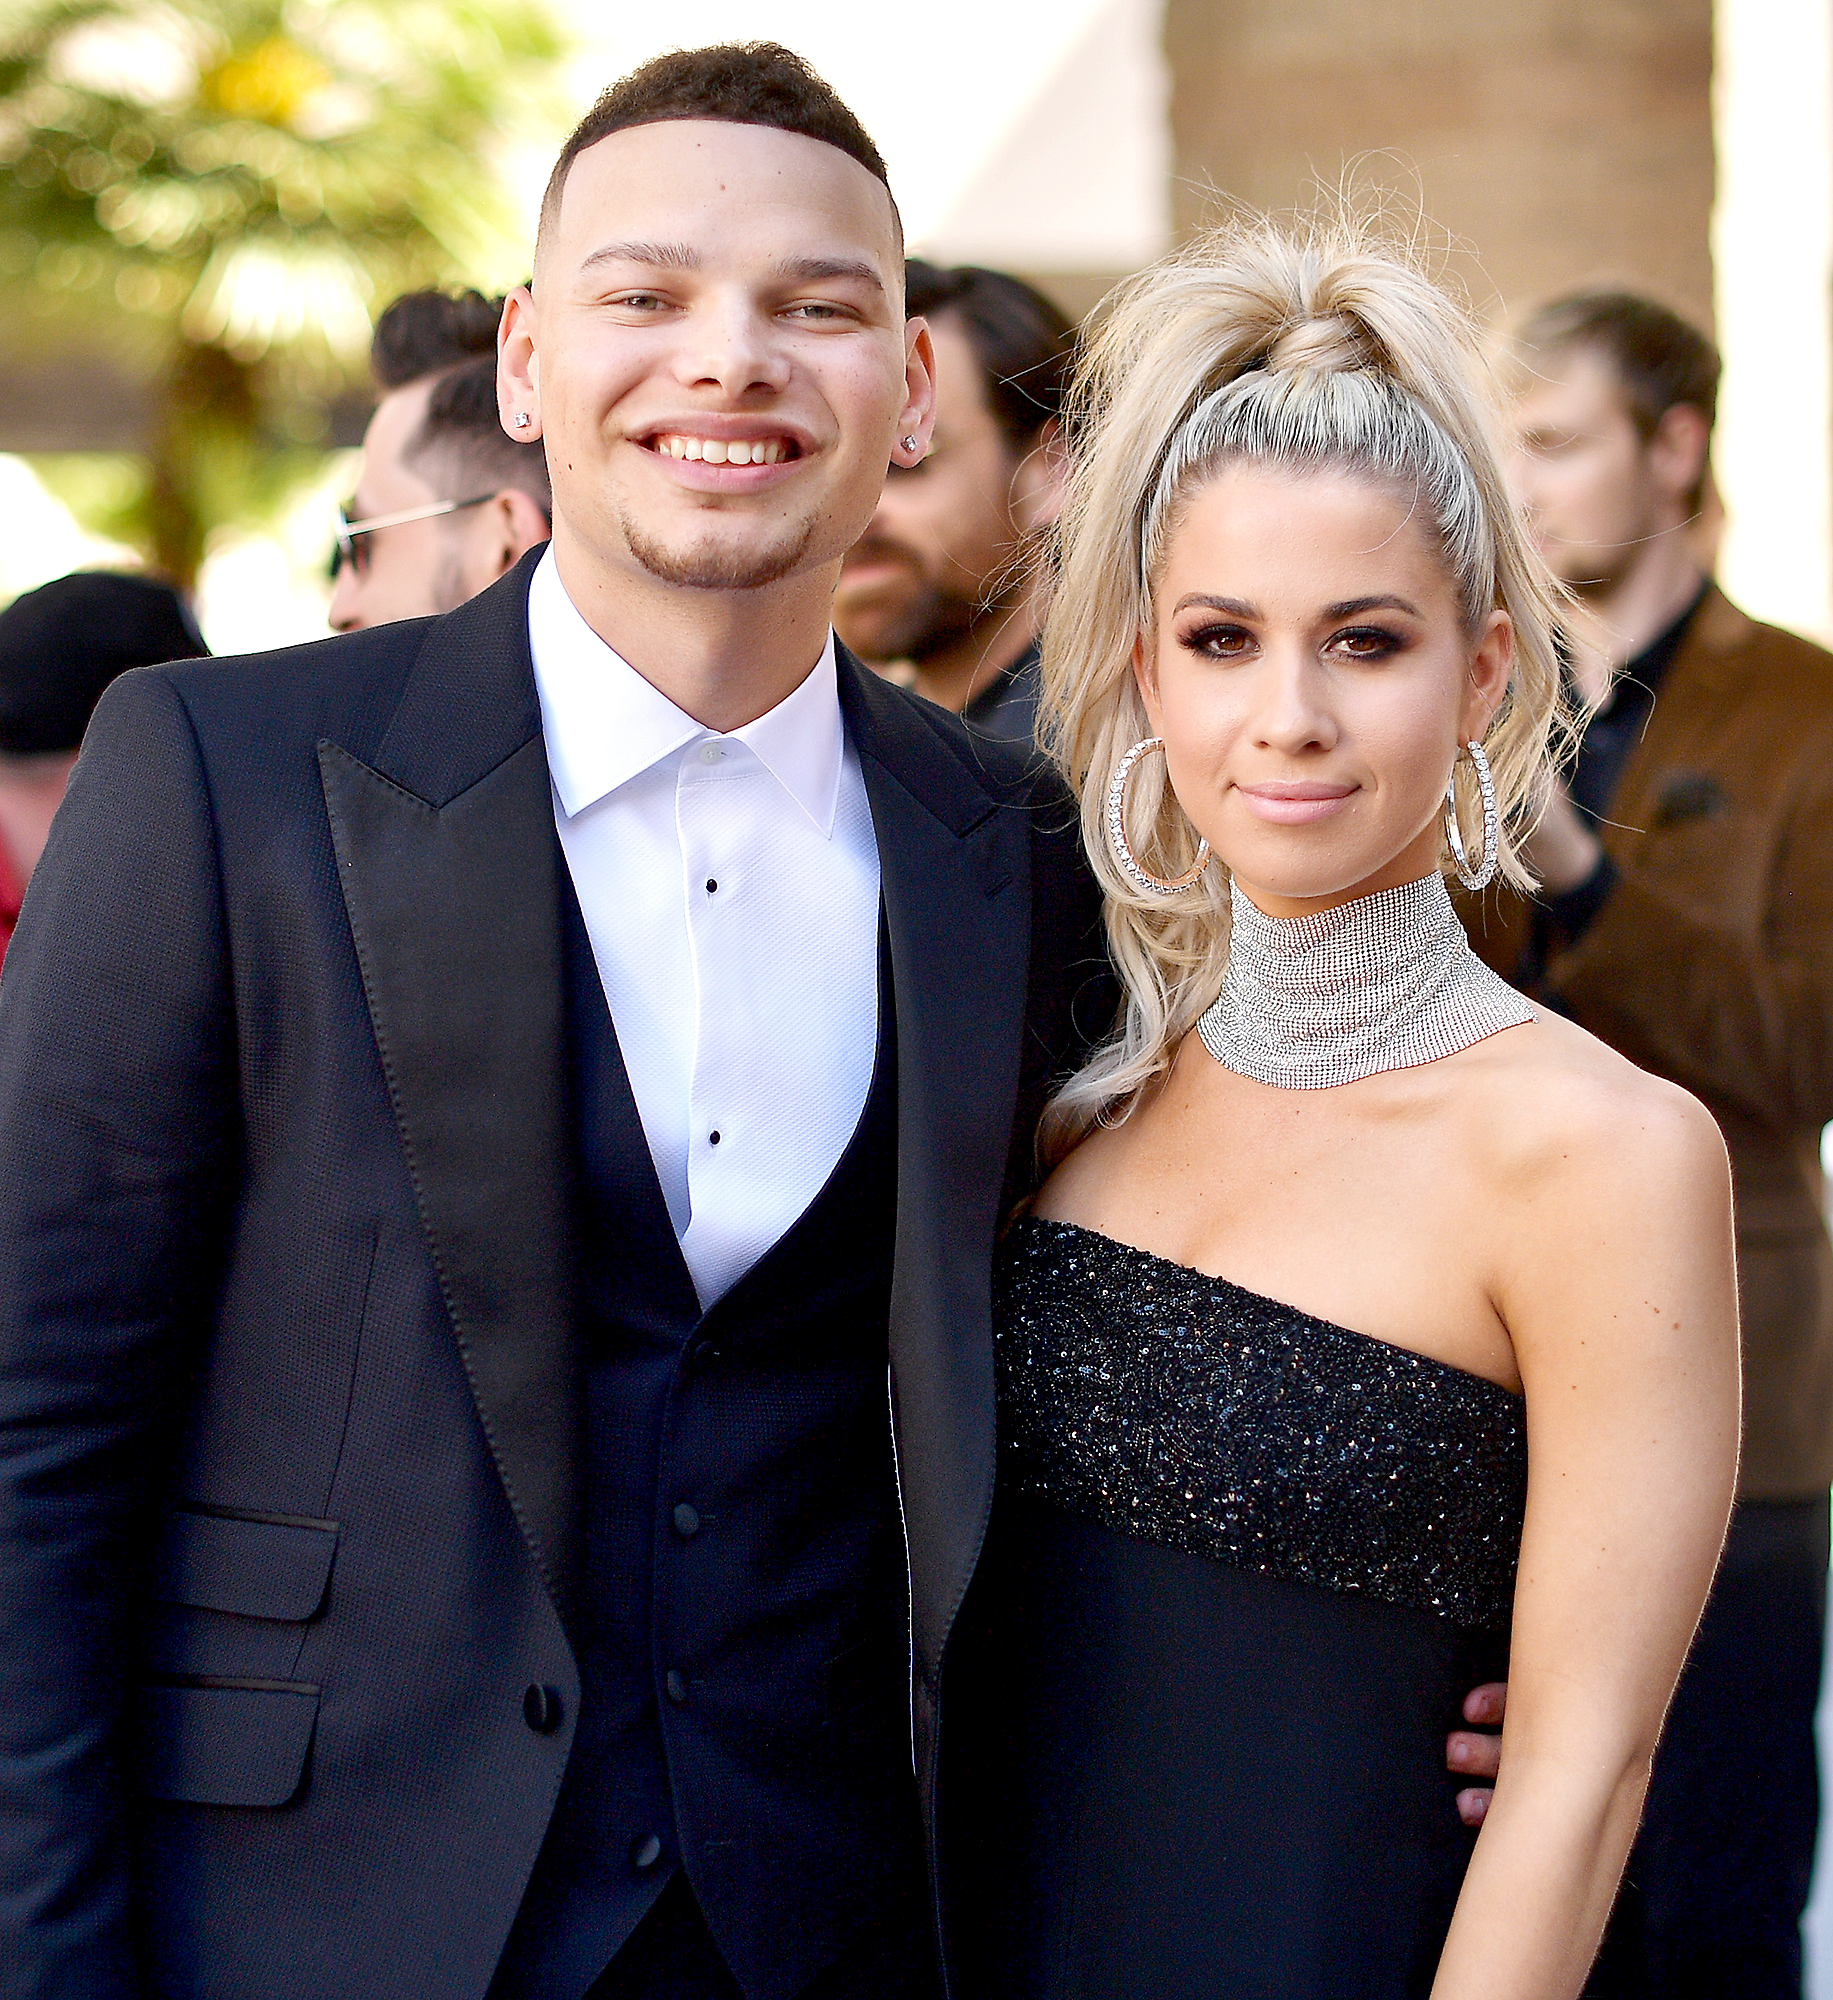 d2fae1543 Kane Brown, Wife Katelyn Jae Are Expecting First Child Together